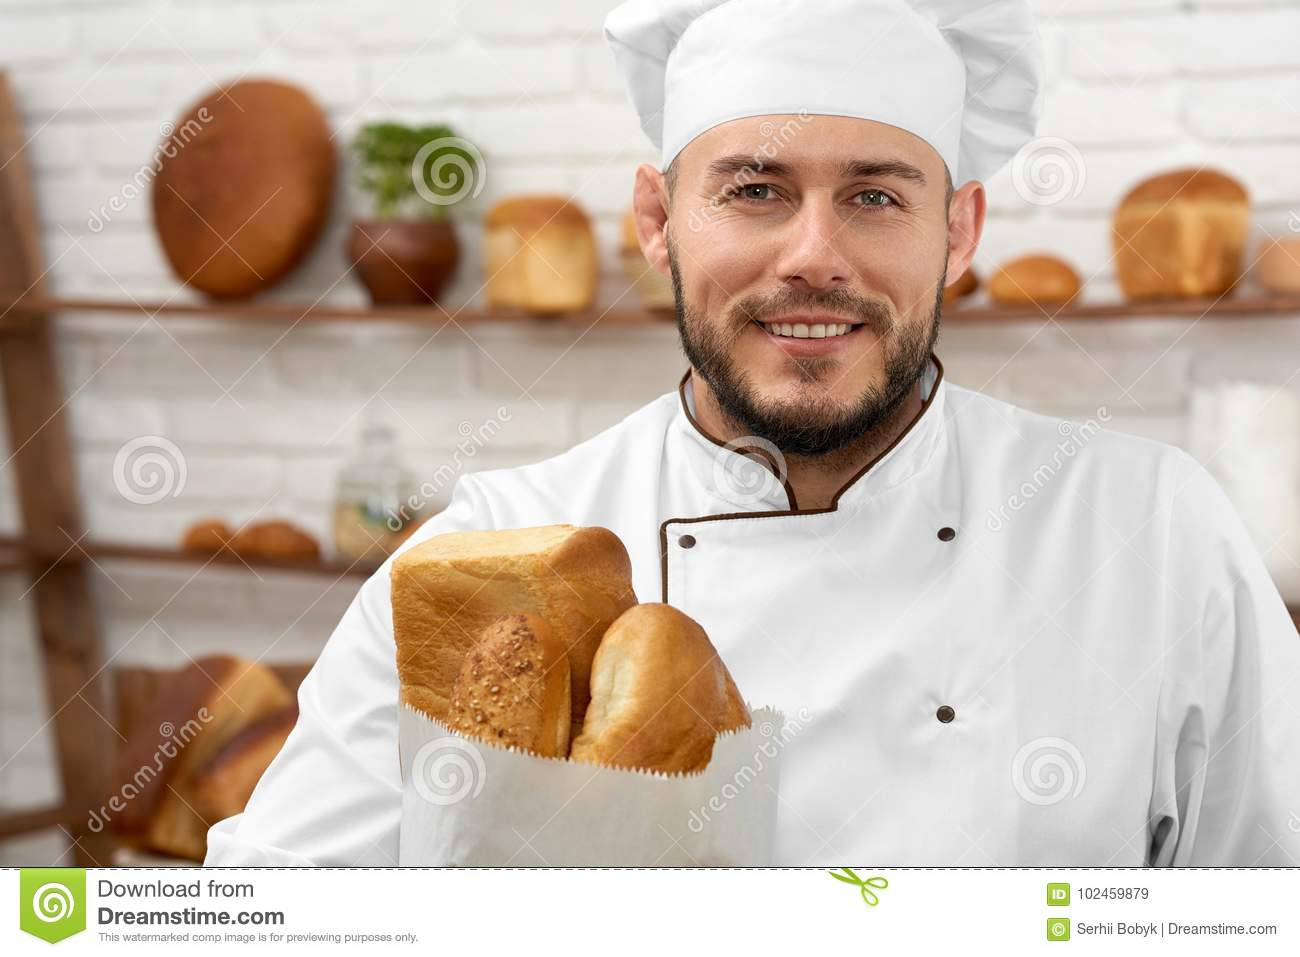 Young man working at his bakery